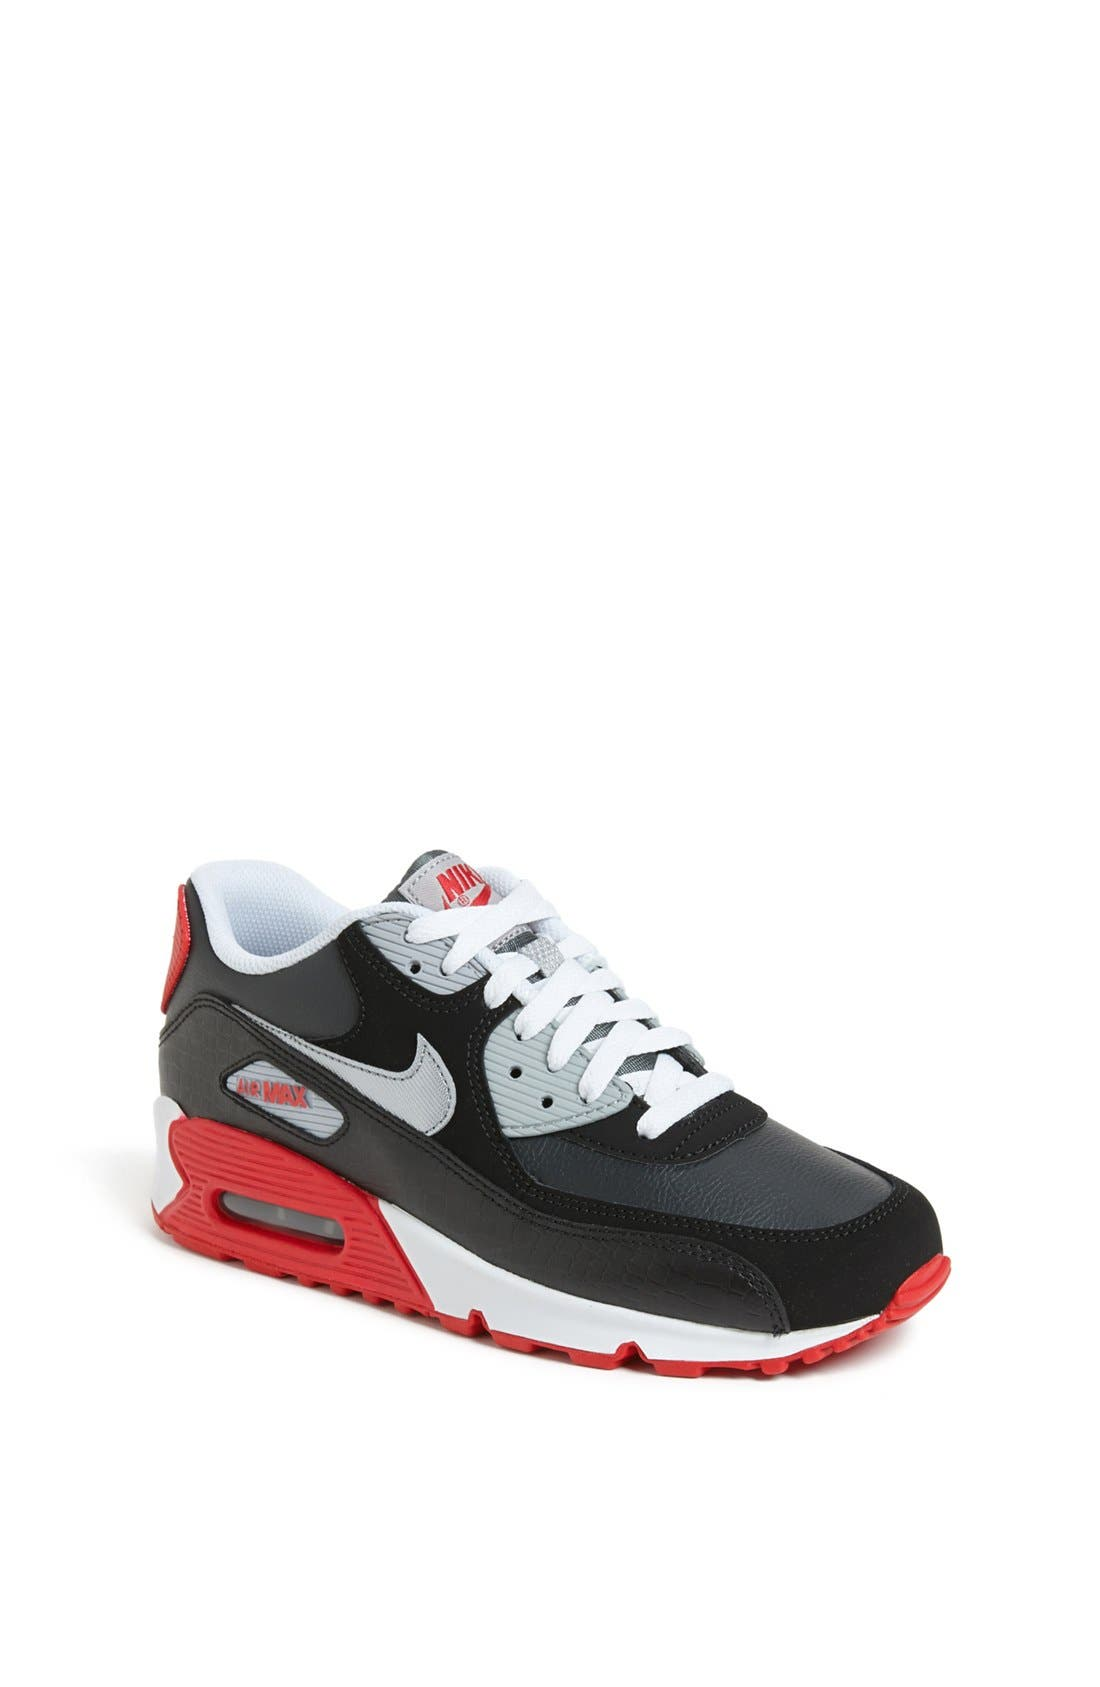 Main Image - Nike 'Air Max Classic' Running Shoe (Little Kid & Big Kid)